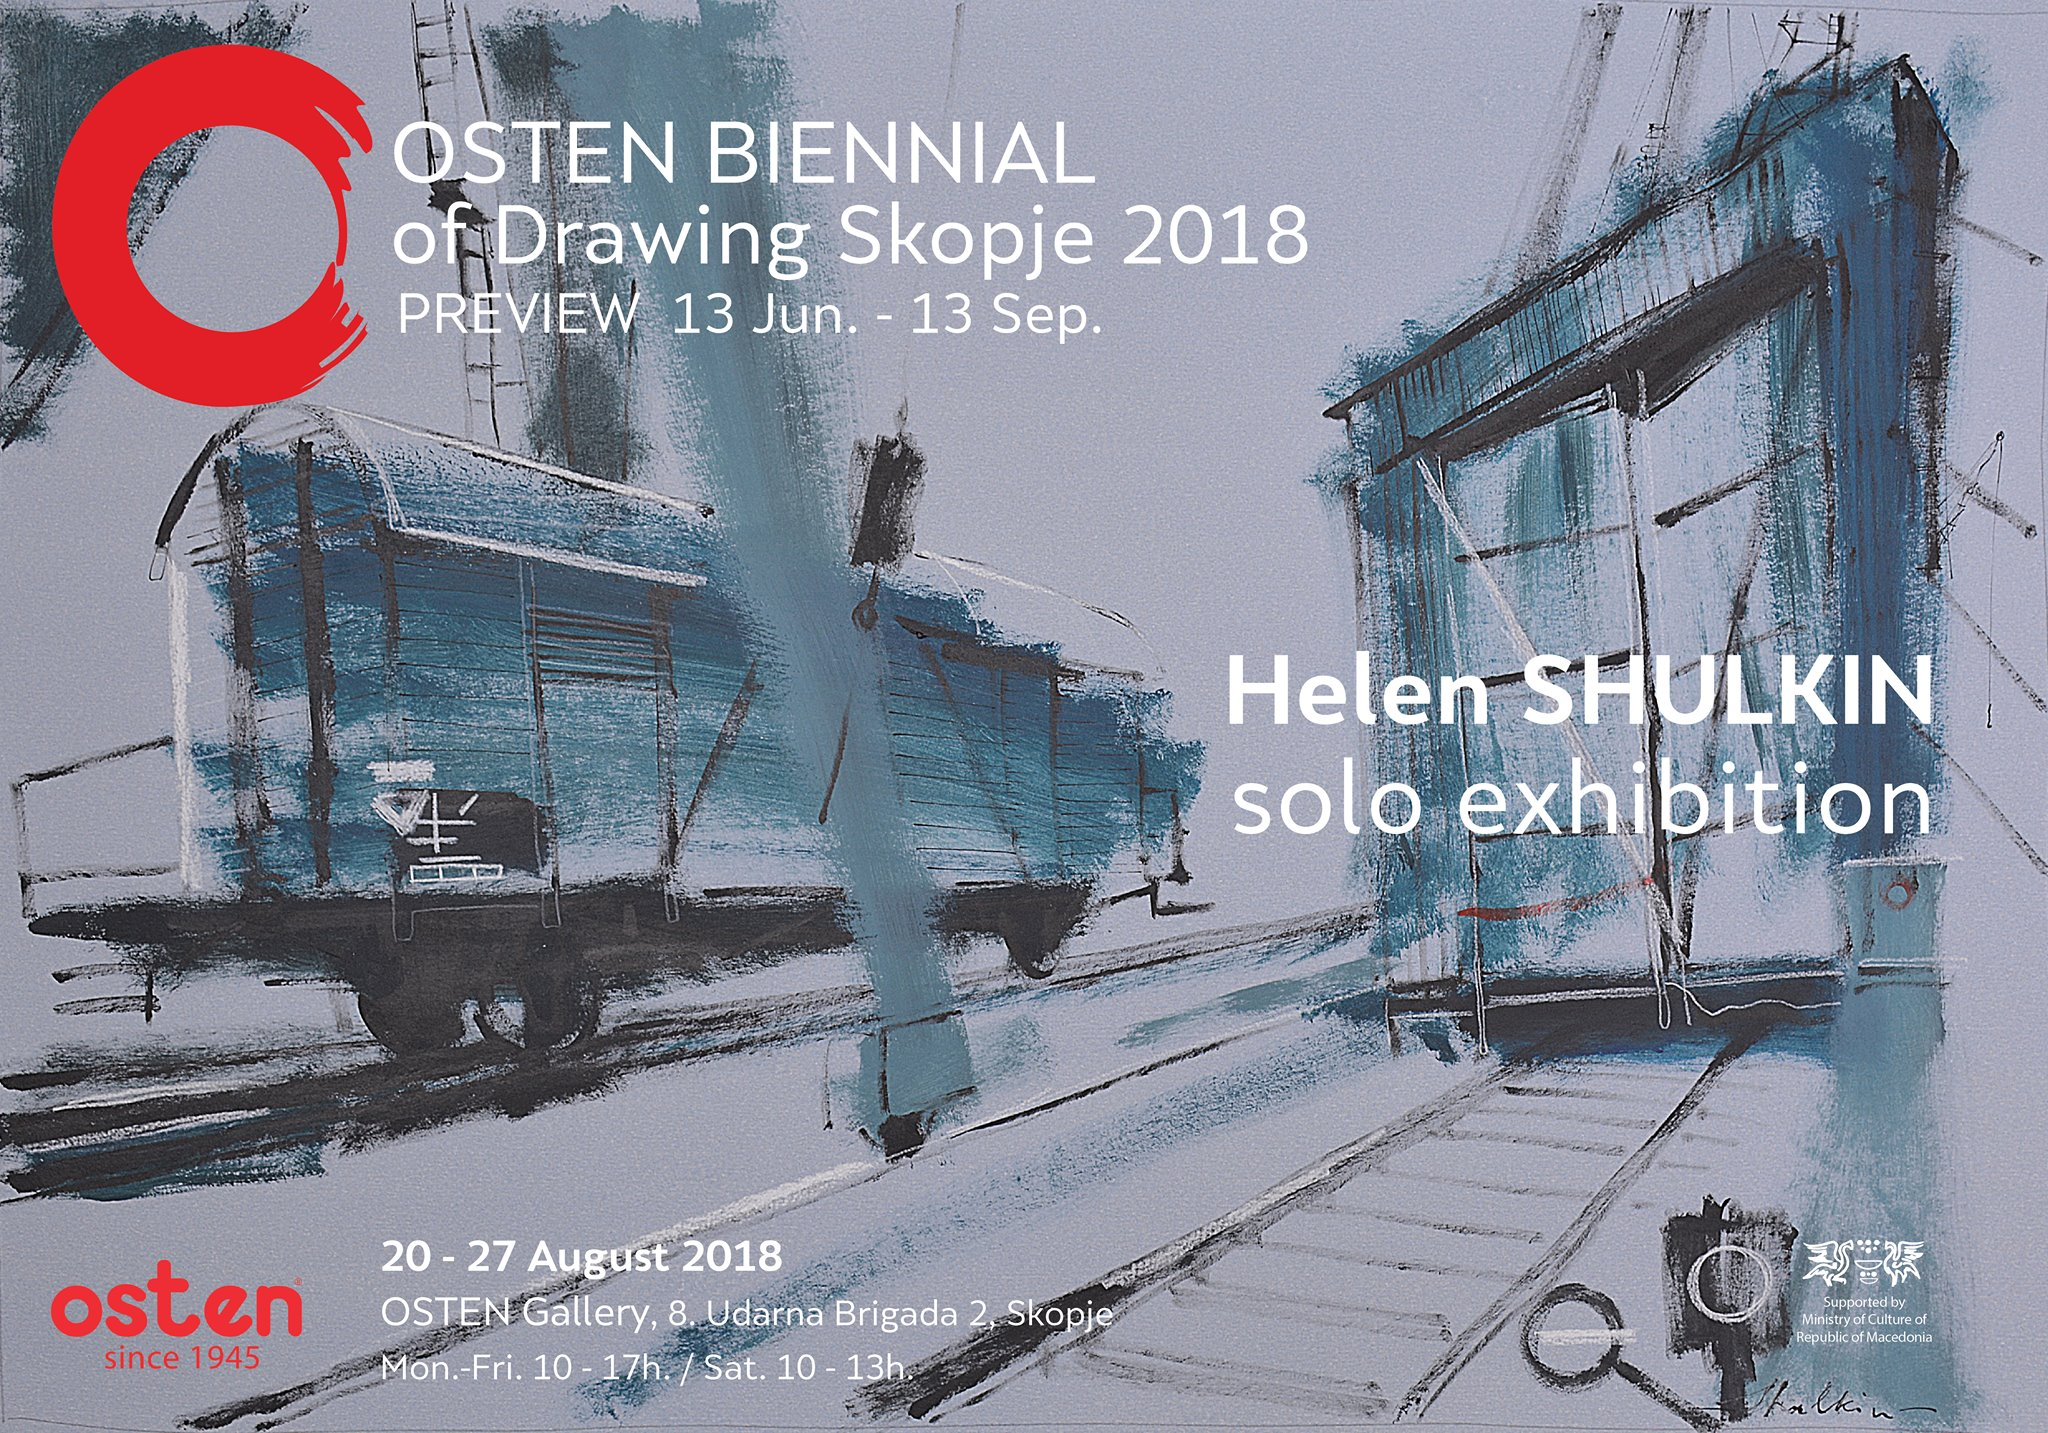 Exhited to announce that my works have been chosen for the Solo Exhibition in the frame of the OSTEN BIENNIAL of Drawing 2018 in Skopje!  20 - 27th August 2018  OSTEN Gallery  8 Udarna Brigada 2 Skopje, Macedonia